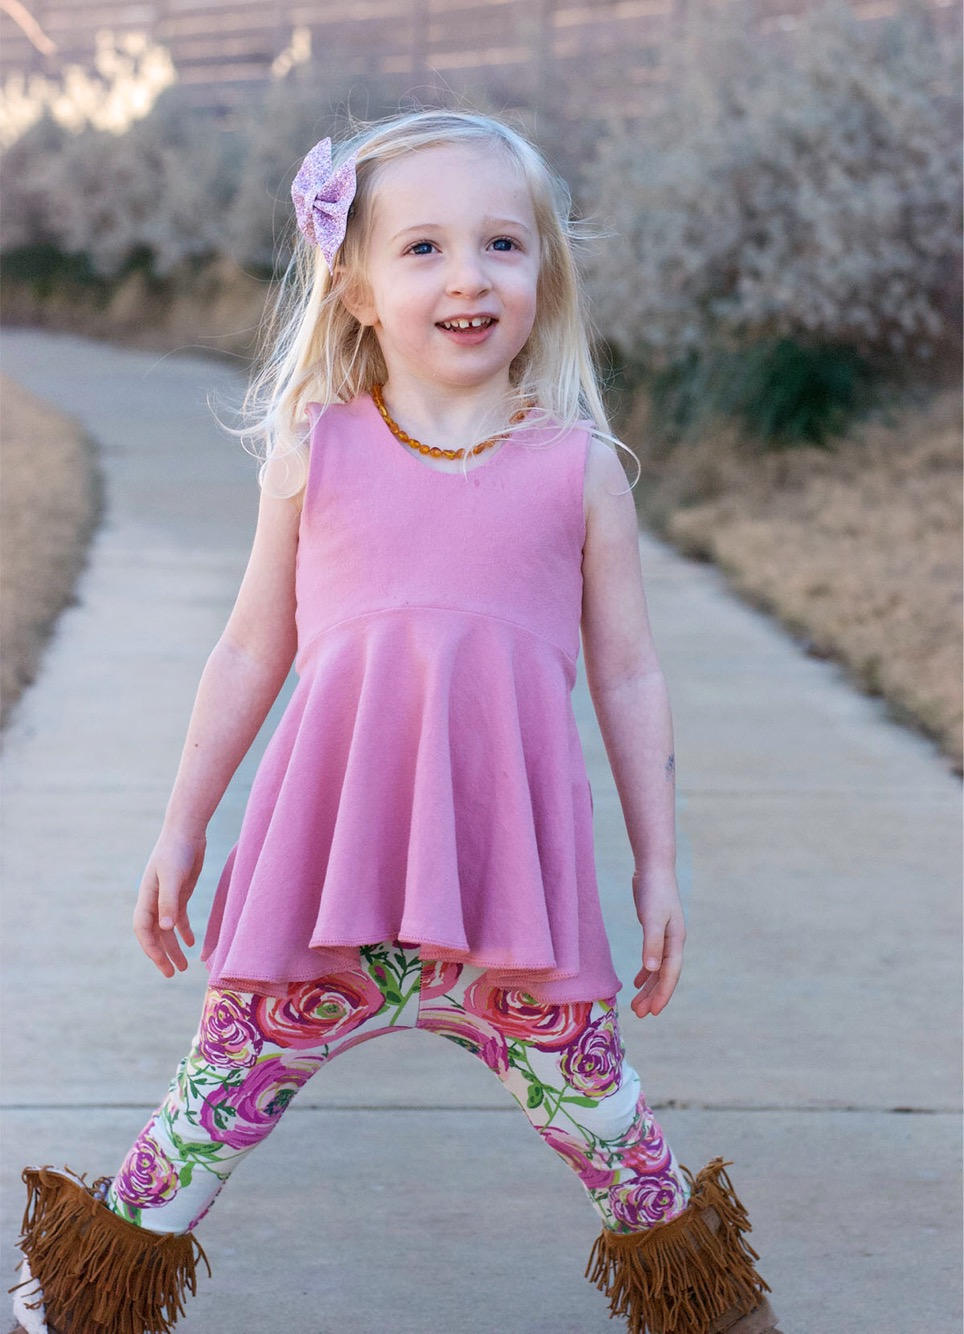 Dusty Rose Pink Peplum - Girls Racerback Solid Tank Top Twirl Top - Kids Mauve Fit and Flare Shirt - Easter Sleeveless Tunic Dress Baby